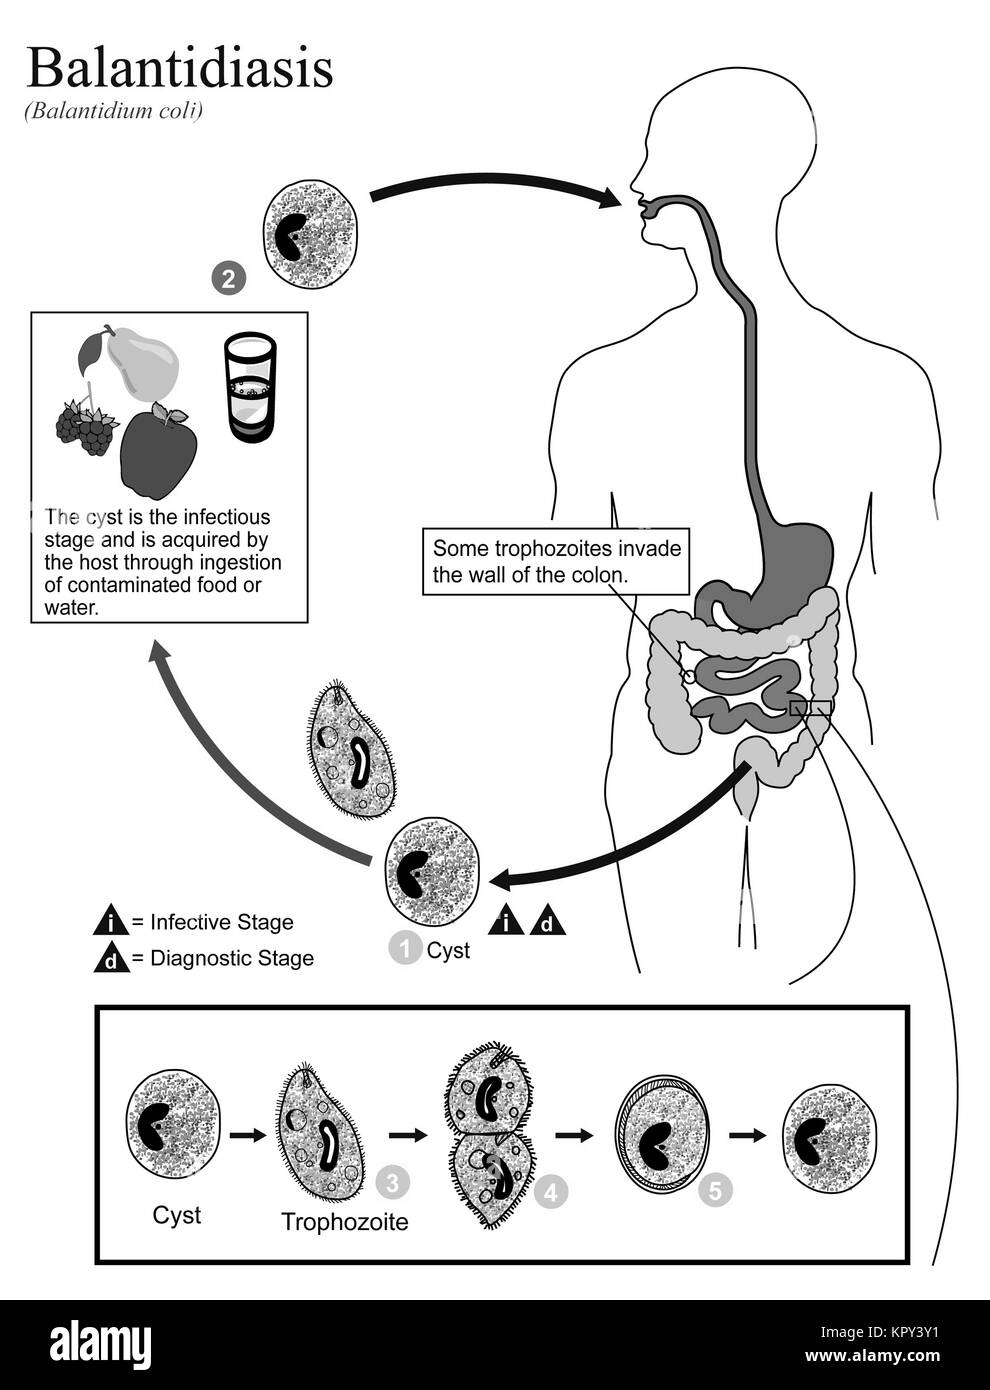 hight resolution of illustrated diagram showing the life cycle of balantidium coli the causal agent of balantidiasis